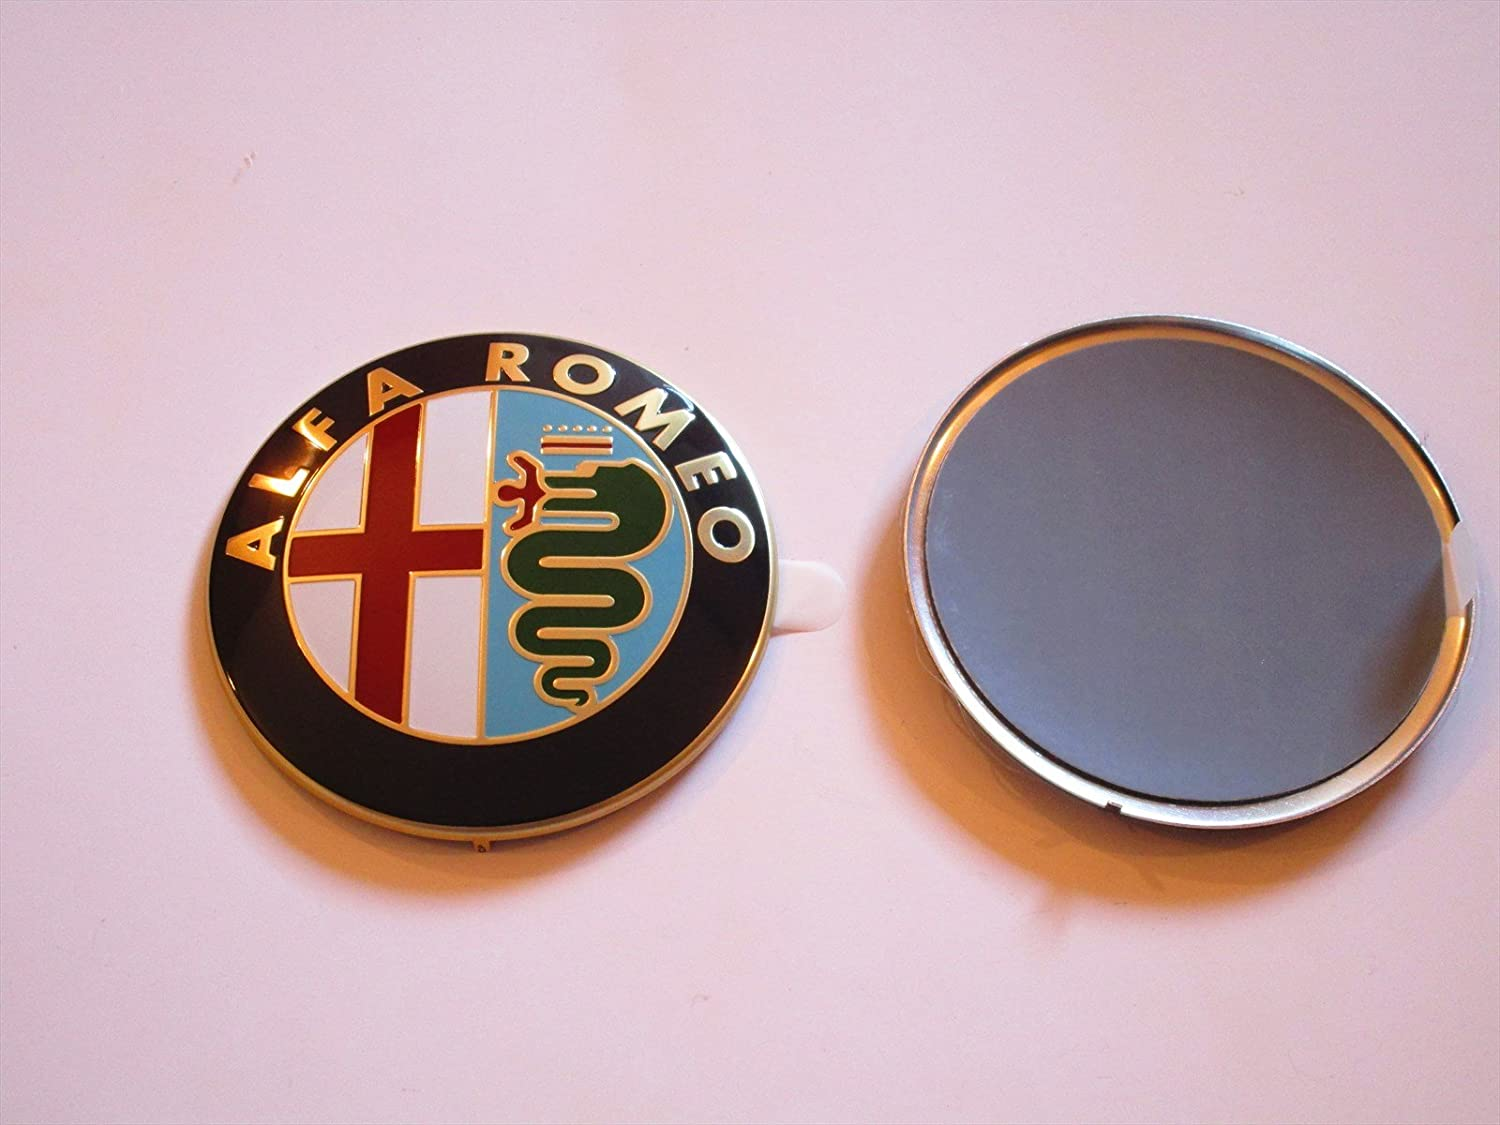 Front Or Rear Emblem Mito Giulietta Brera 147 159 Gt Badge Logo New Small Circle Blue Car Motorbike